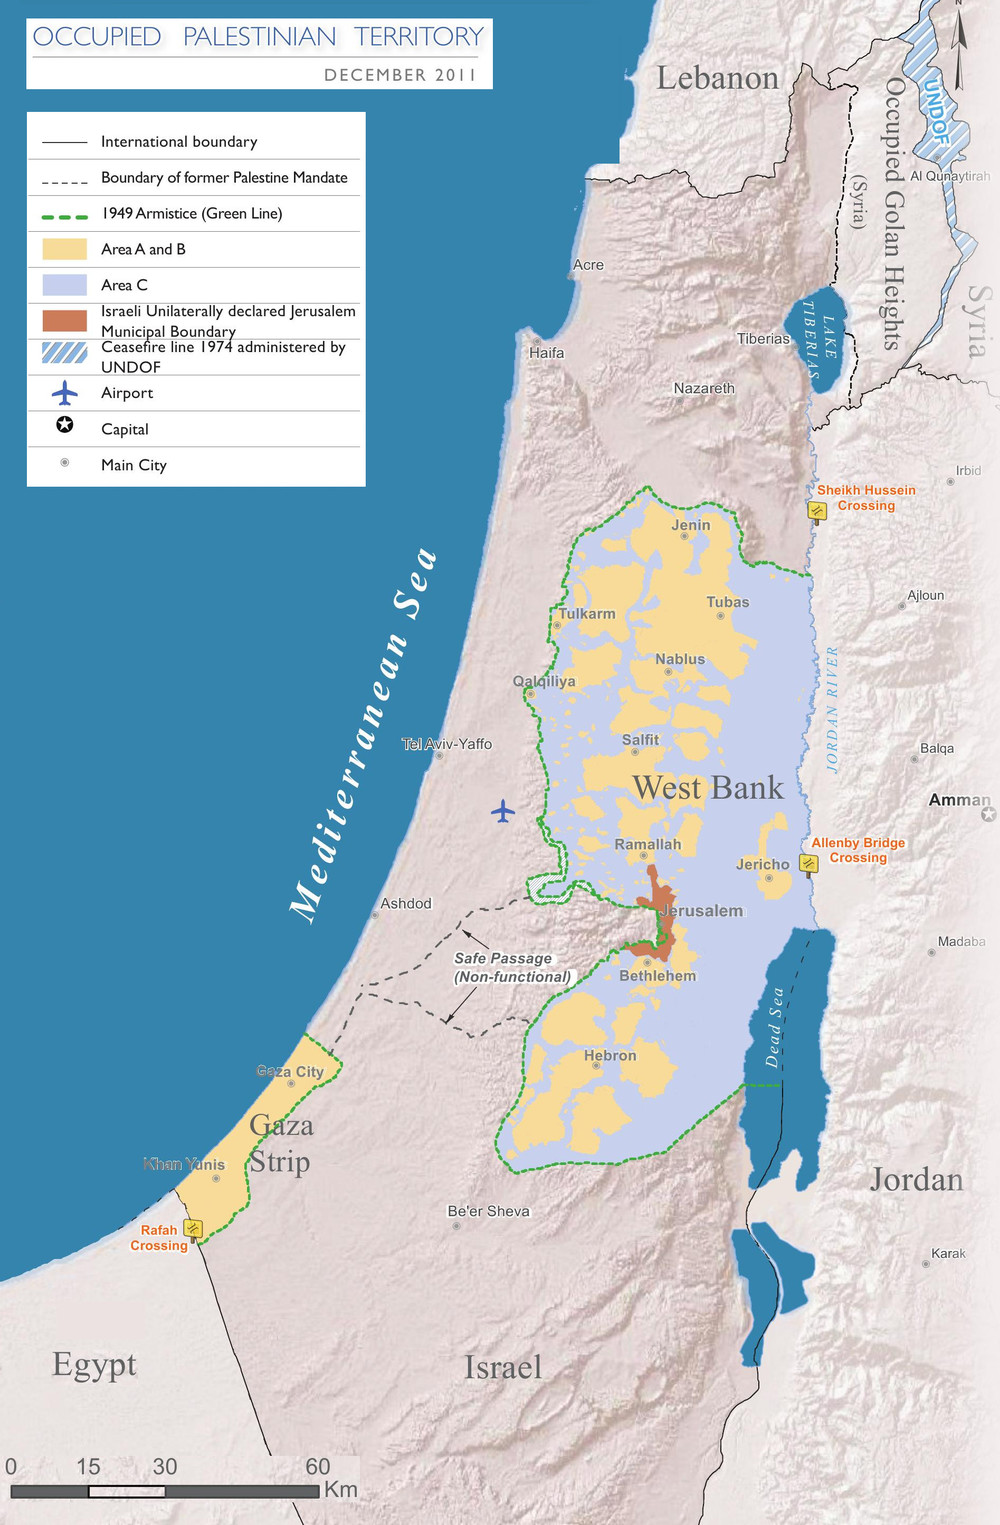 Israel and Palestine borders- Gaza and West Bank are Palestinian Territory